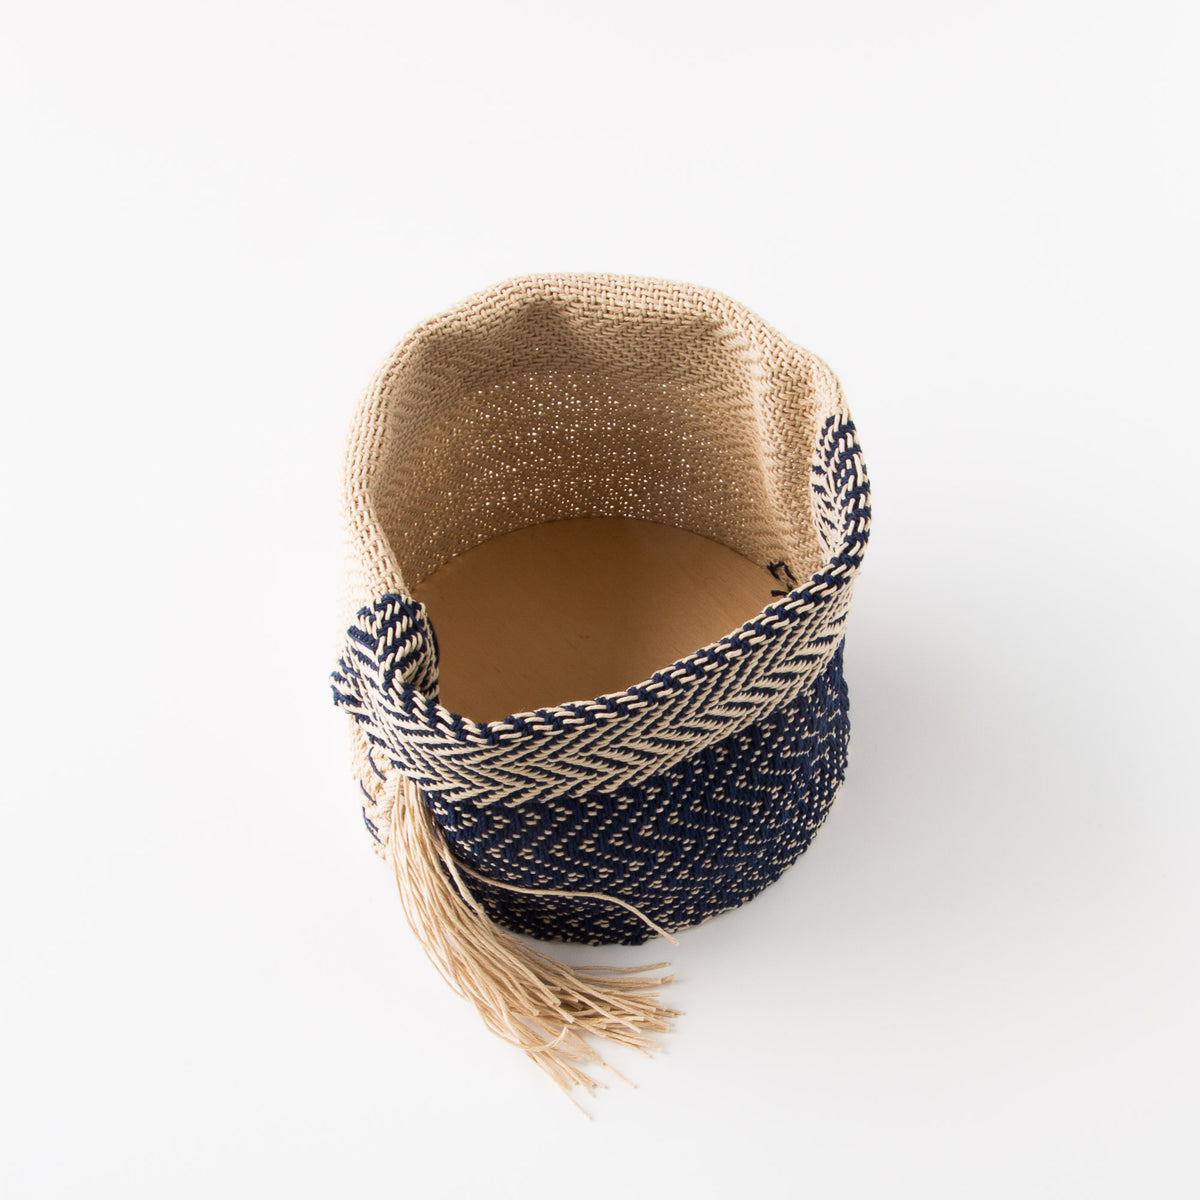 Top View - Hemp Table Basket (Medium) - Handwoven in Montreal, Quebec, Canada - Sold by Chic & Basta